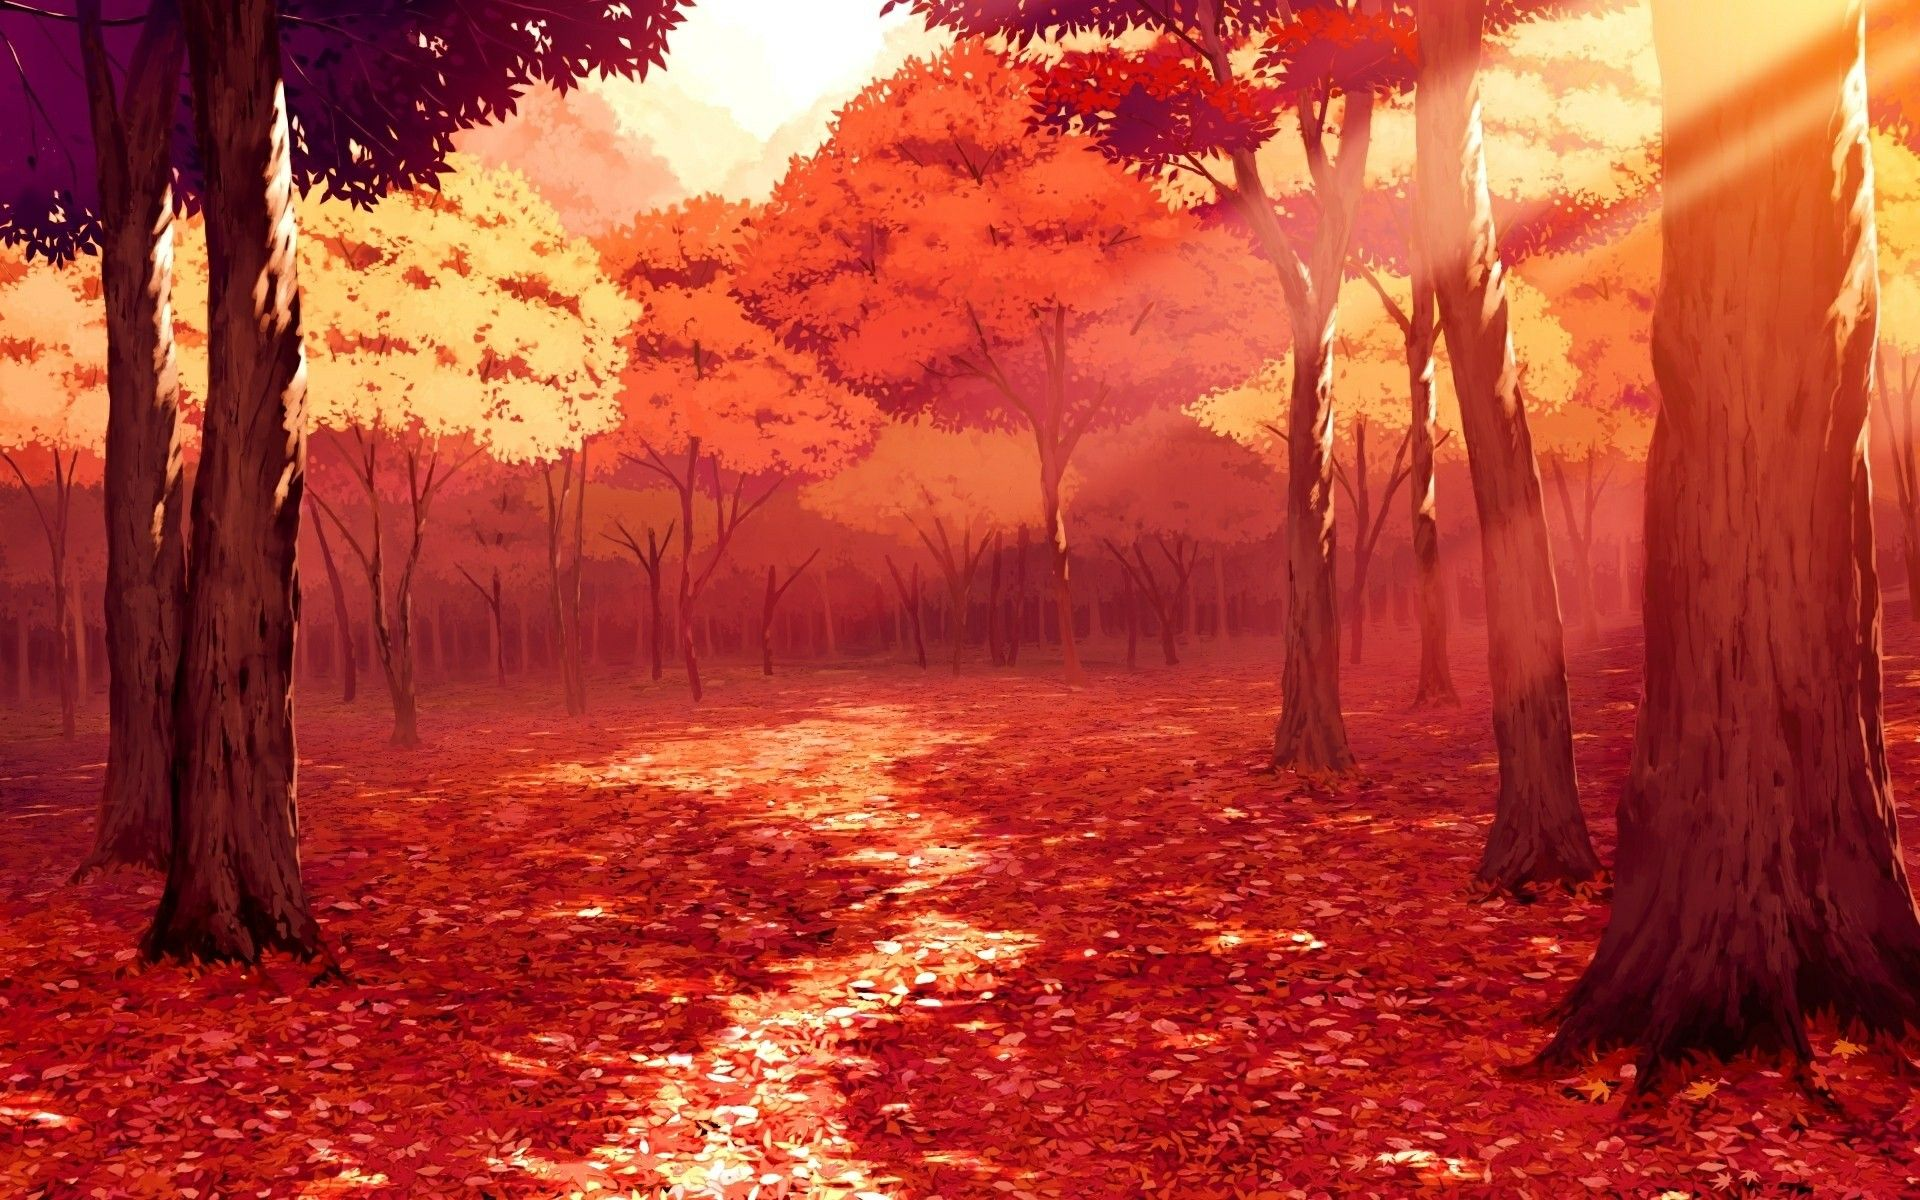 Fall autumn trees forest red leaves pathway anime scenery